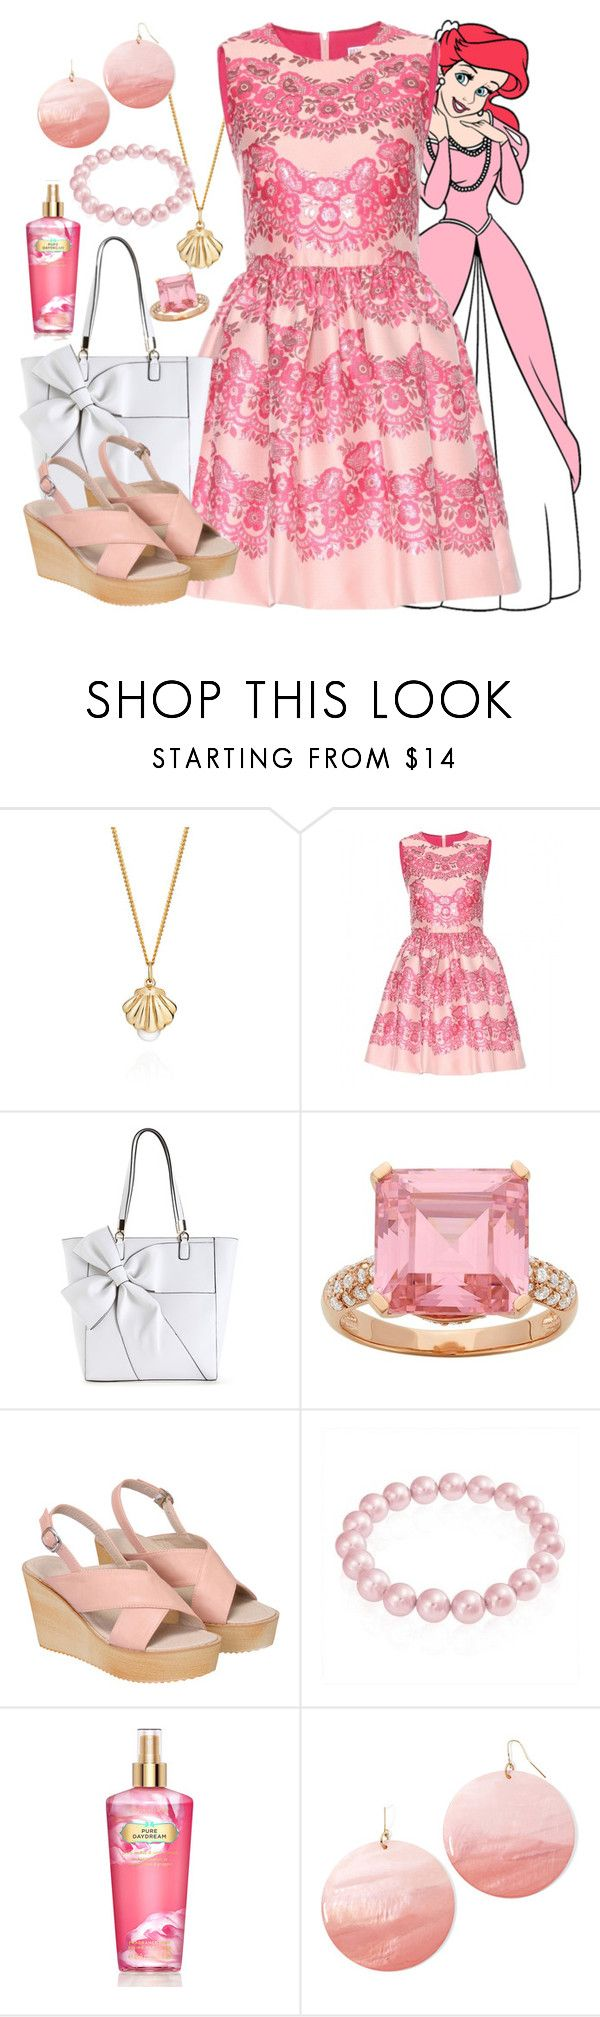 """Ariel - Formal - Disney Bound"" by rainbowbaconcupcake ❤ liked on Polyvore featuring Lee Renee, RED Valentino, Bling Jewelry, Victoria's Secret and Mixit"